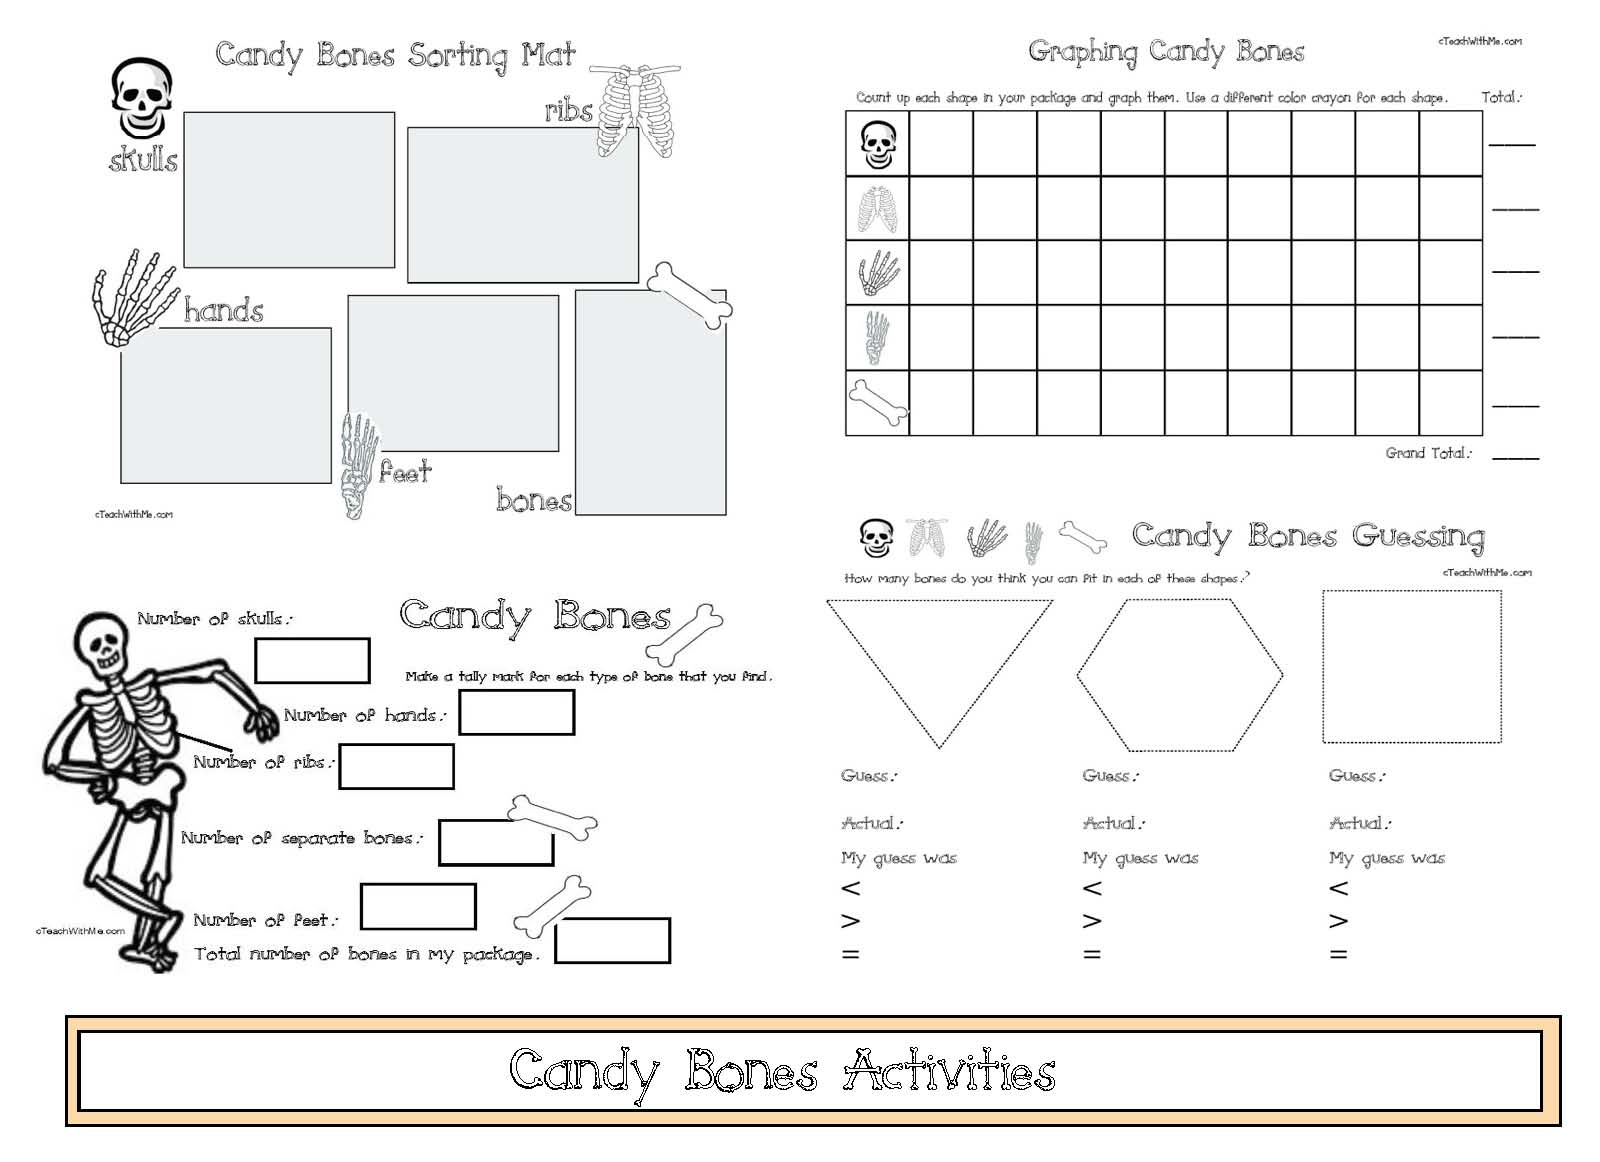 candy bones activities, candy bones graph, candy shapes, shape activities, candy shape posters, free classroom posters, candy bones math centers, candy bones math, skull and bones math, skull and bones graph, skull and bone activities, pirate activities, pirate math centers, pirate games, skeleton activities, skeleton games, graphing activities, halloween games, halloween math, candy math, math activities with candy,